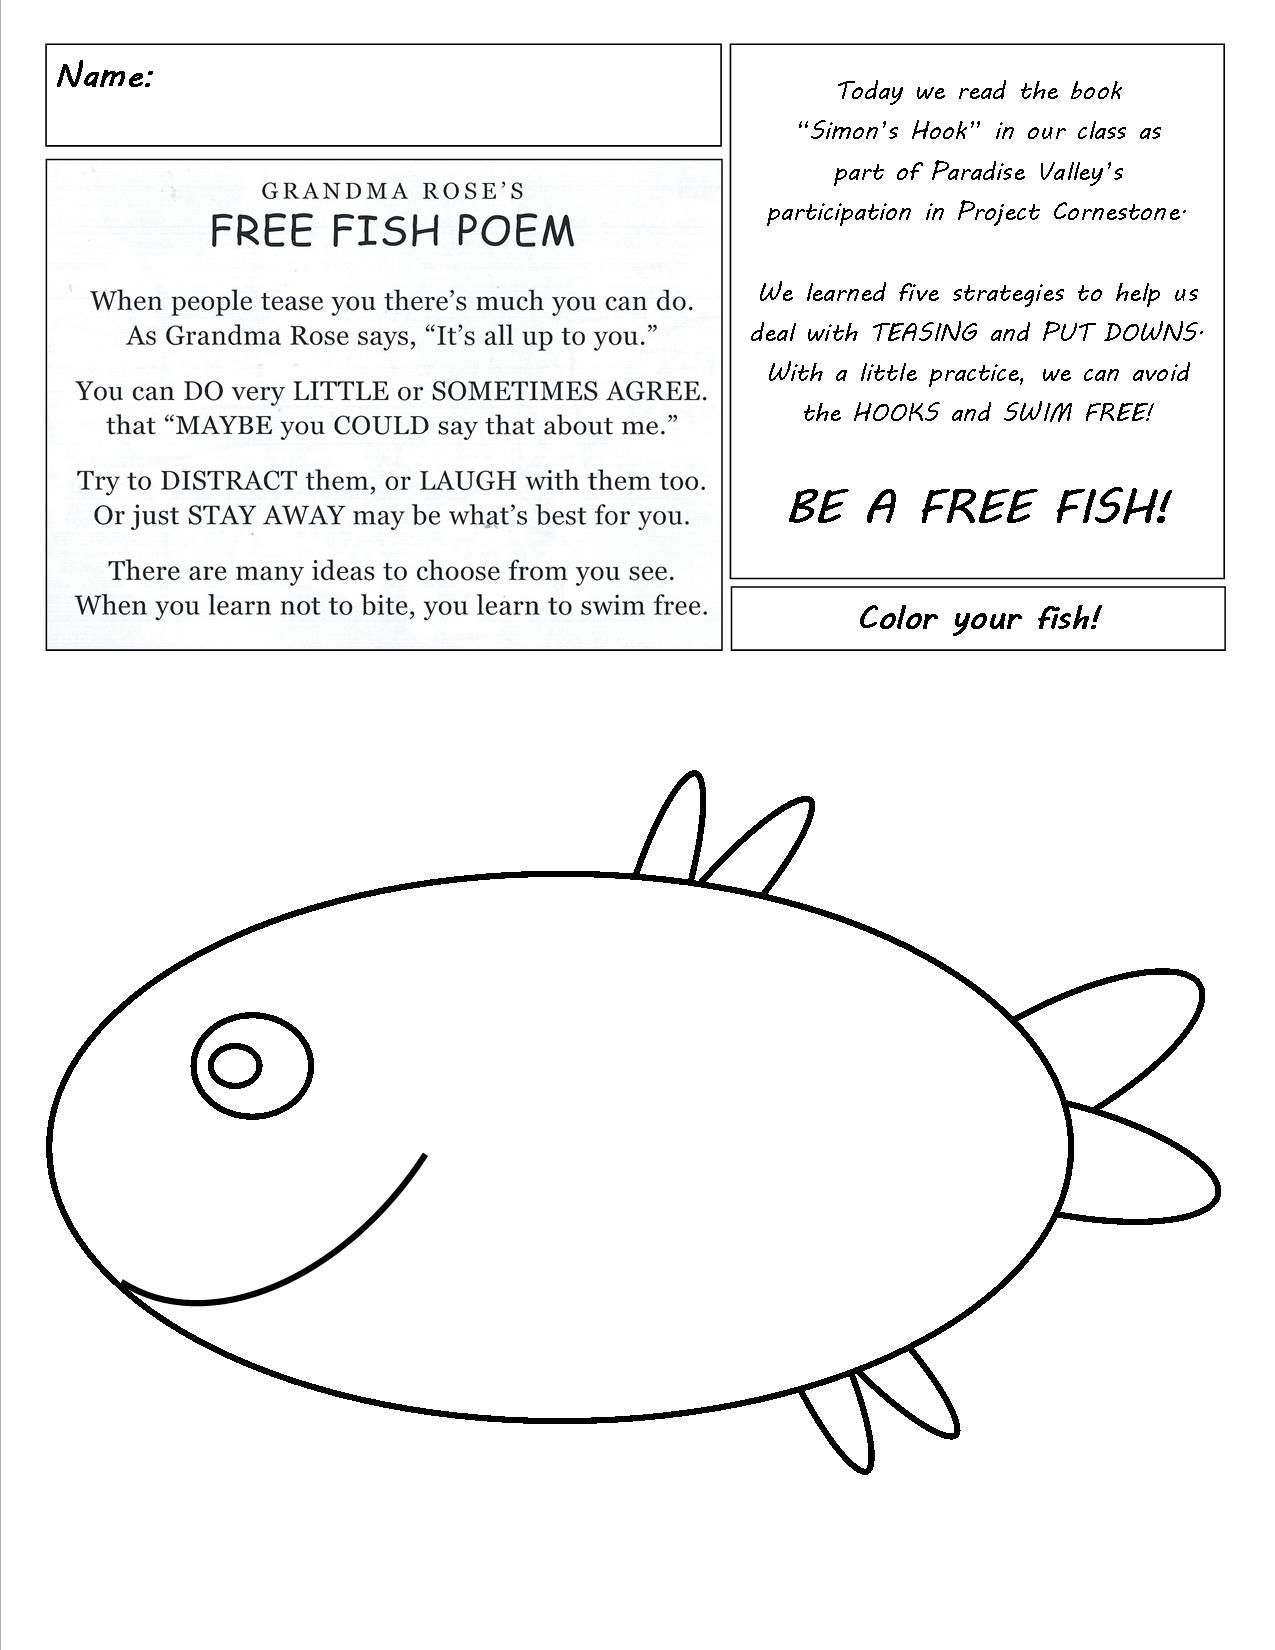 Simon S Hook Free Fish Poem Coloring Page School Counseling